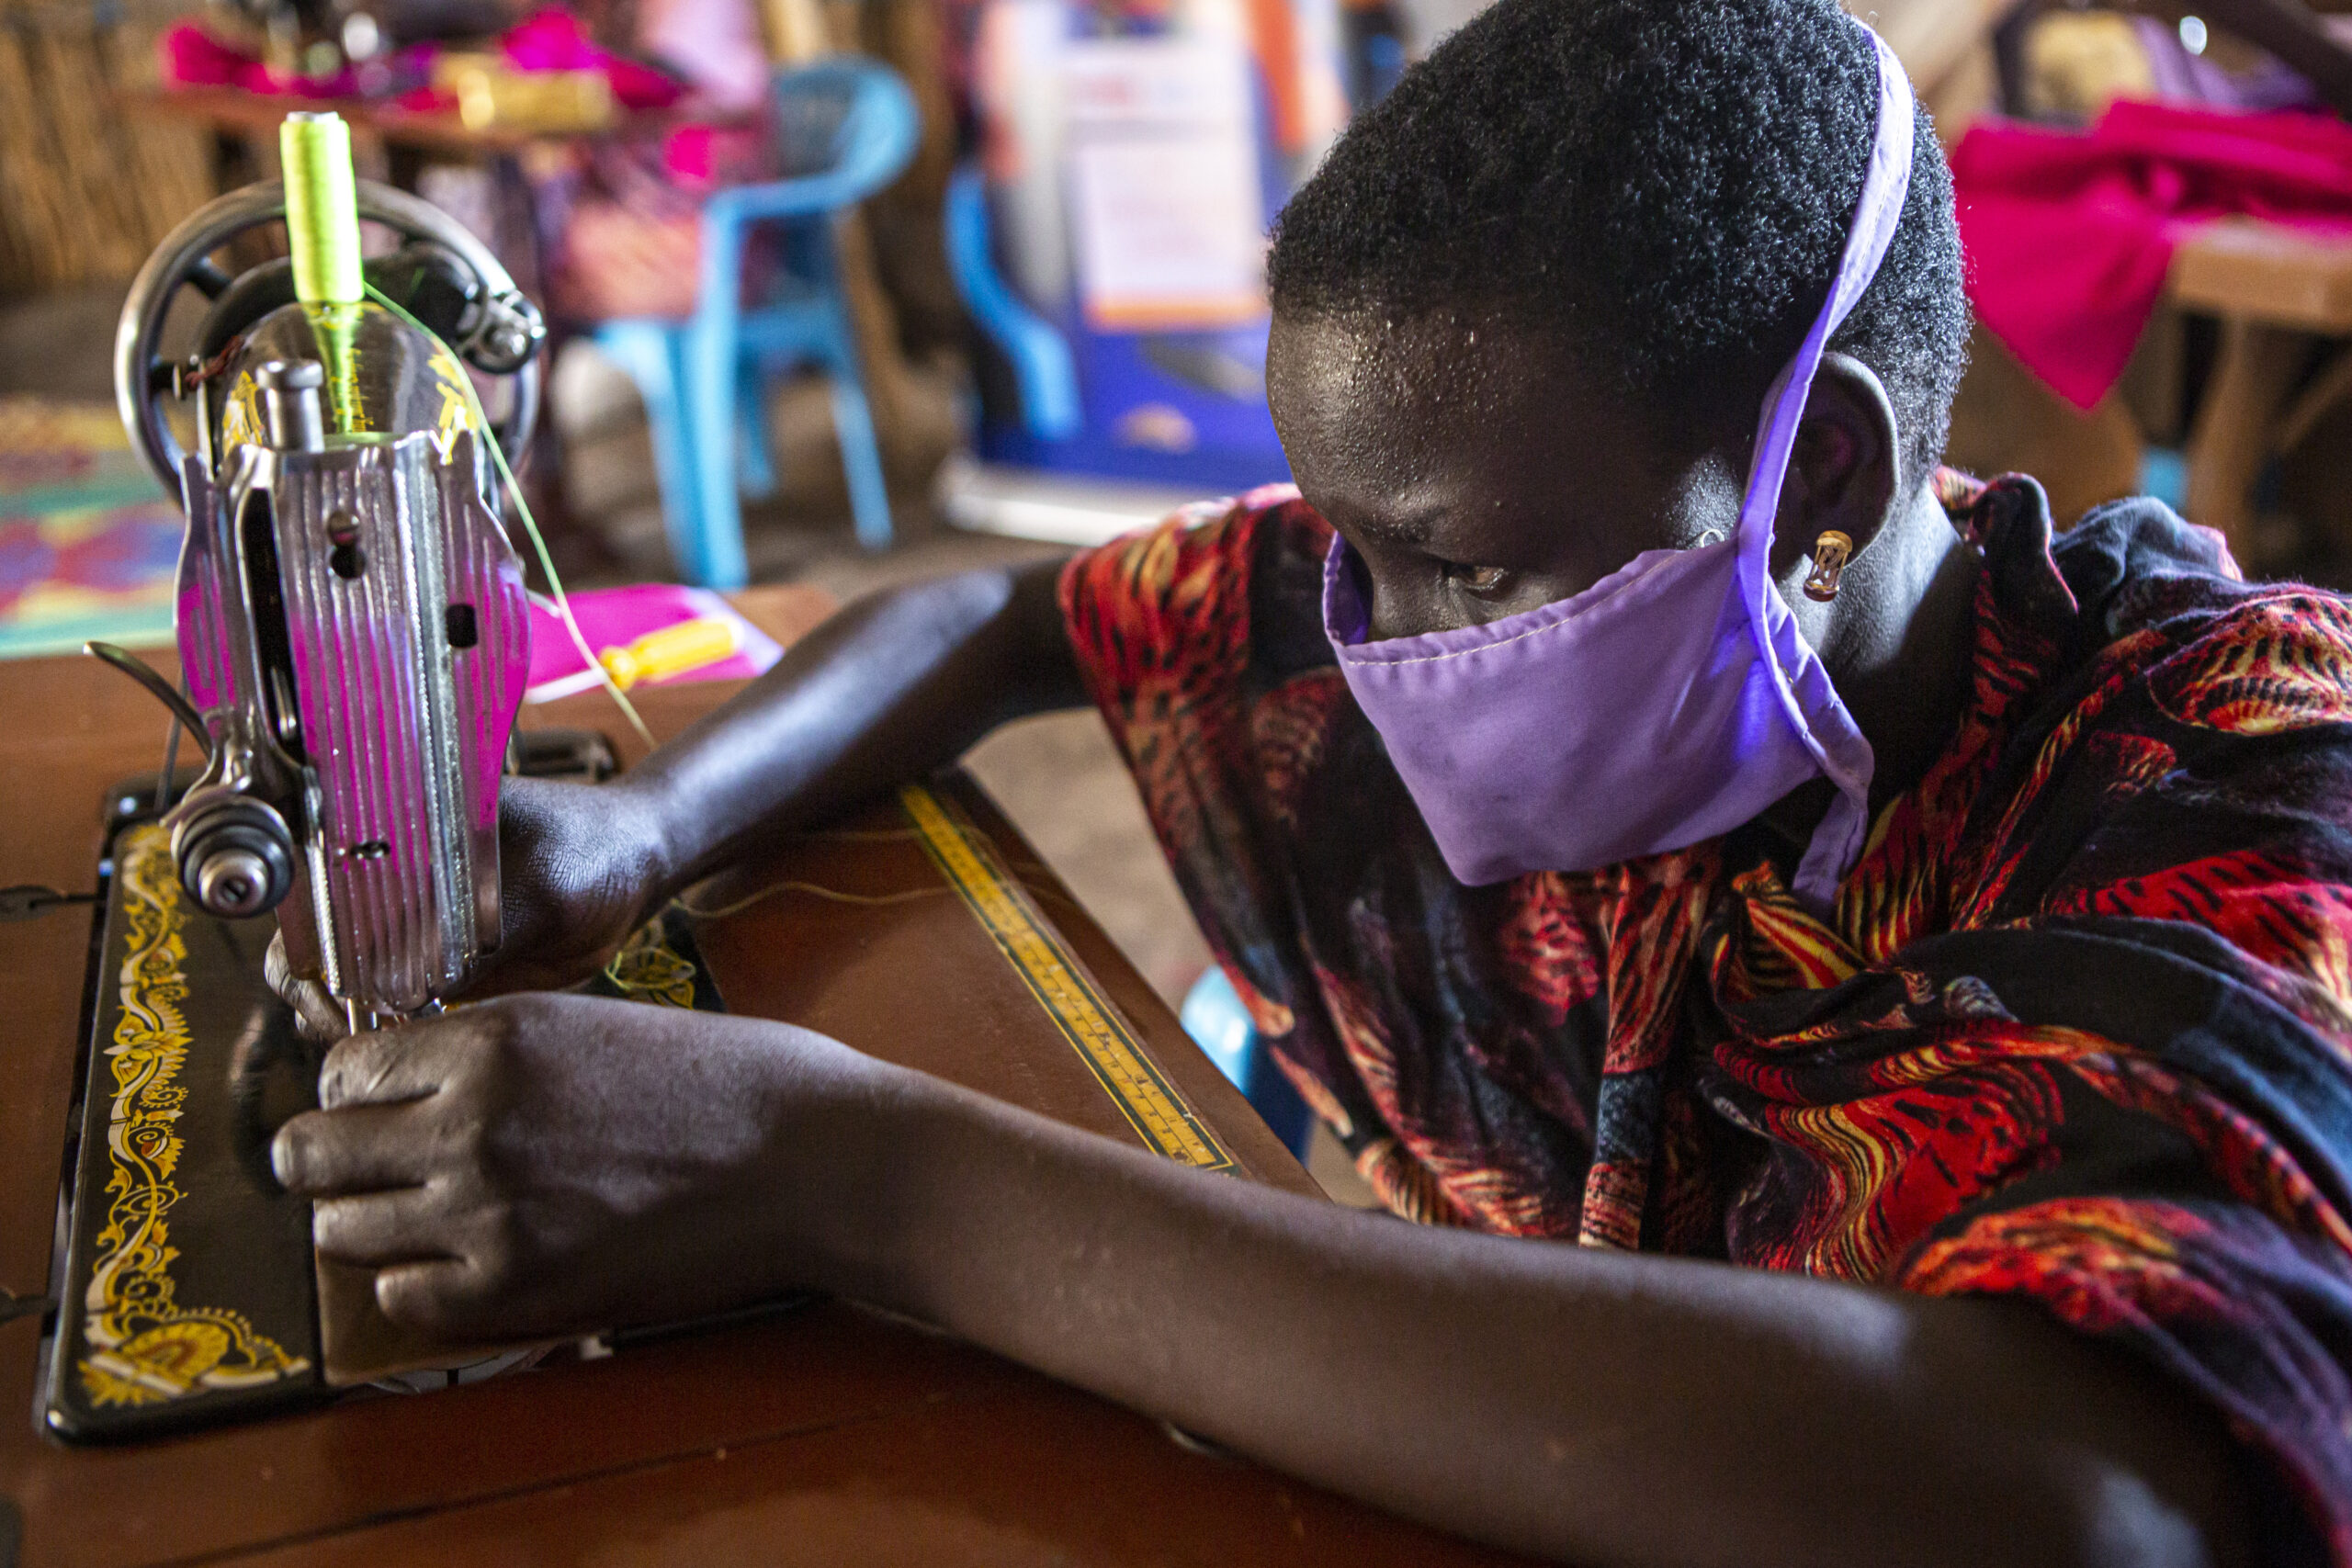 International Medical Corps trains women in different activities such as sewing or beading at the Women and Girls Friendly Space in Aburoch, South Sudan.